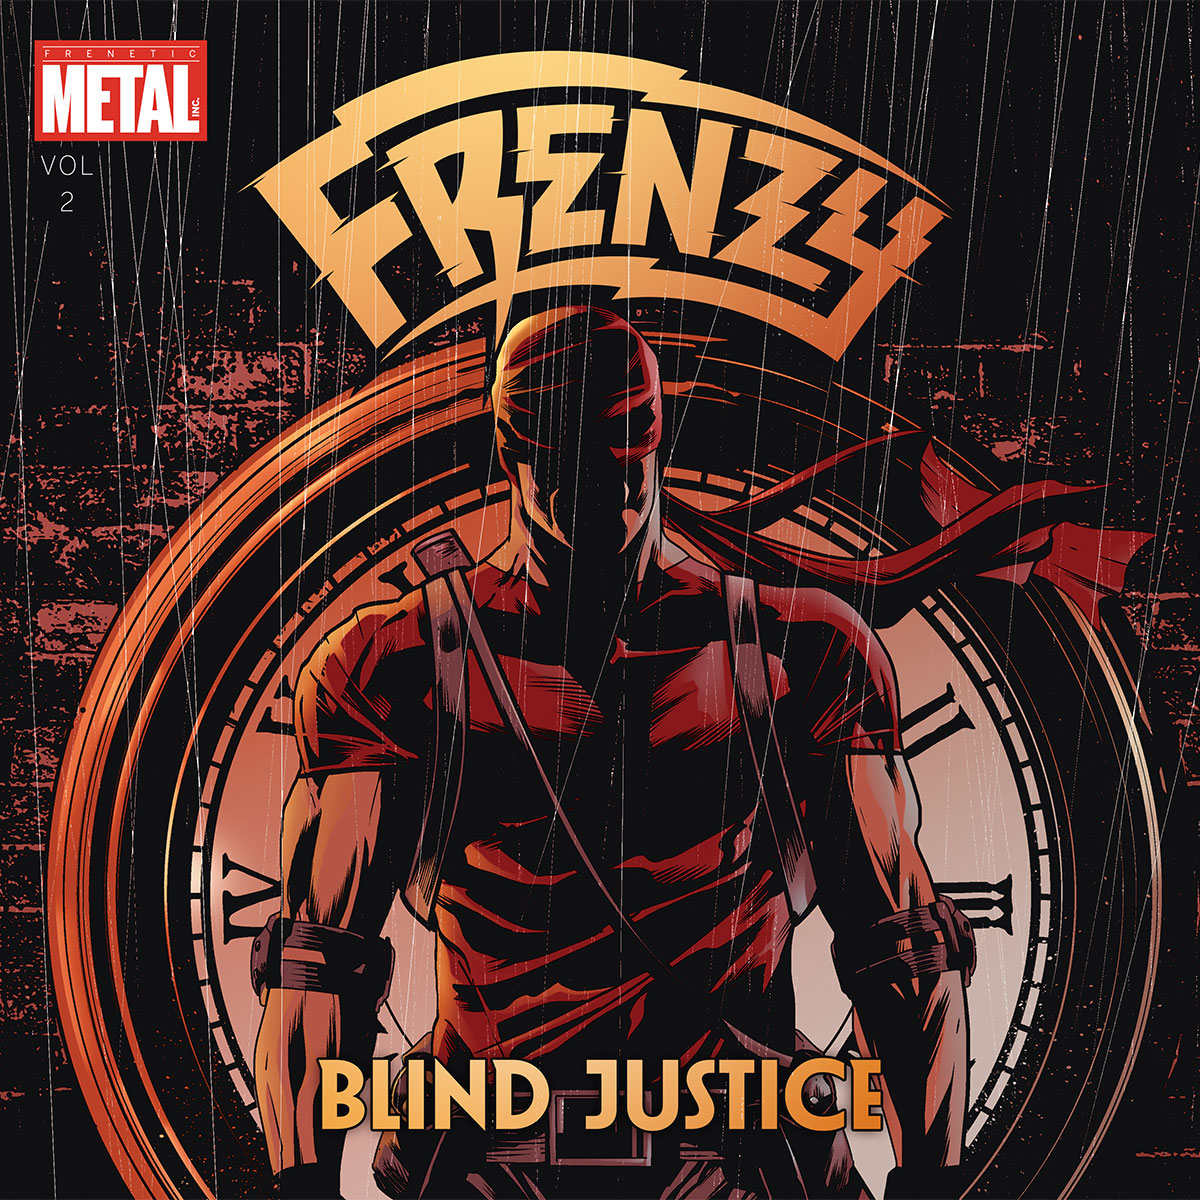 frenzy-blind-justice-spanische-superhelden-album-review